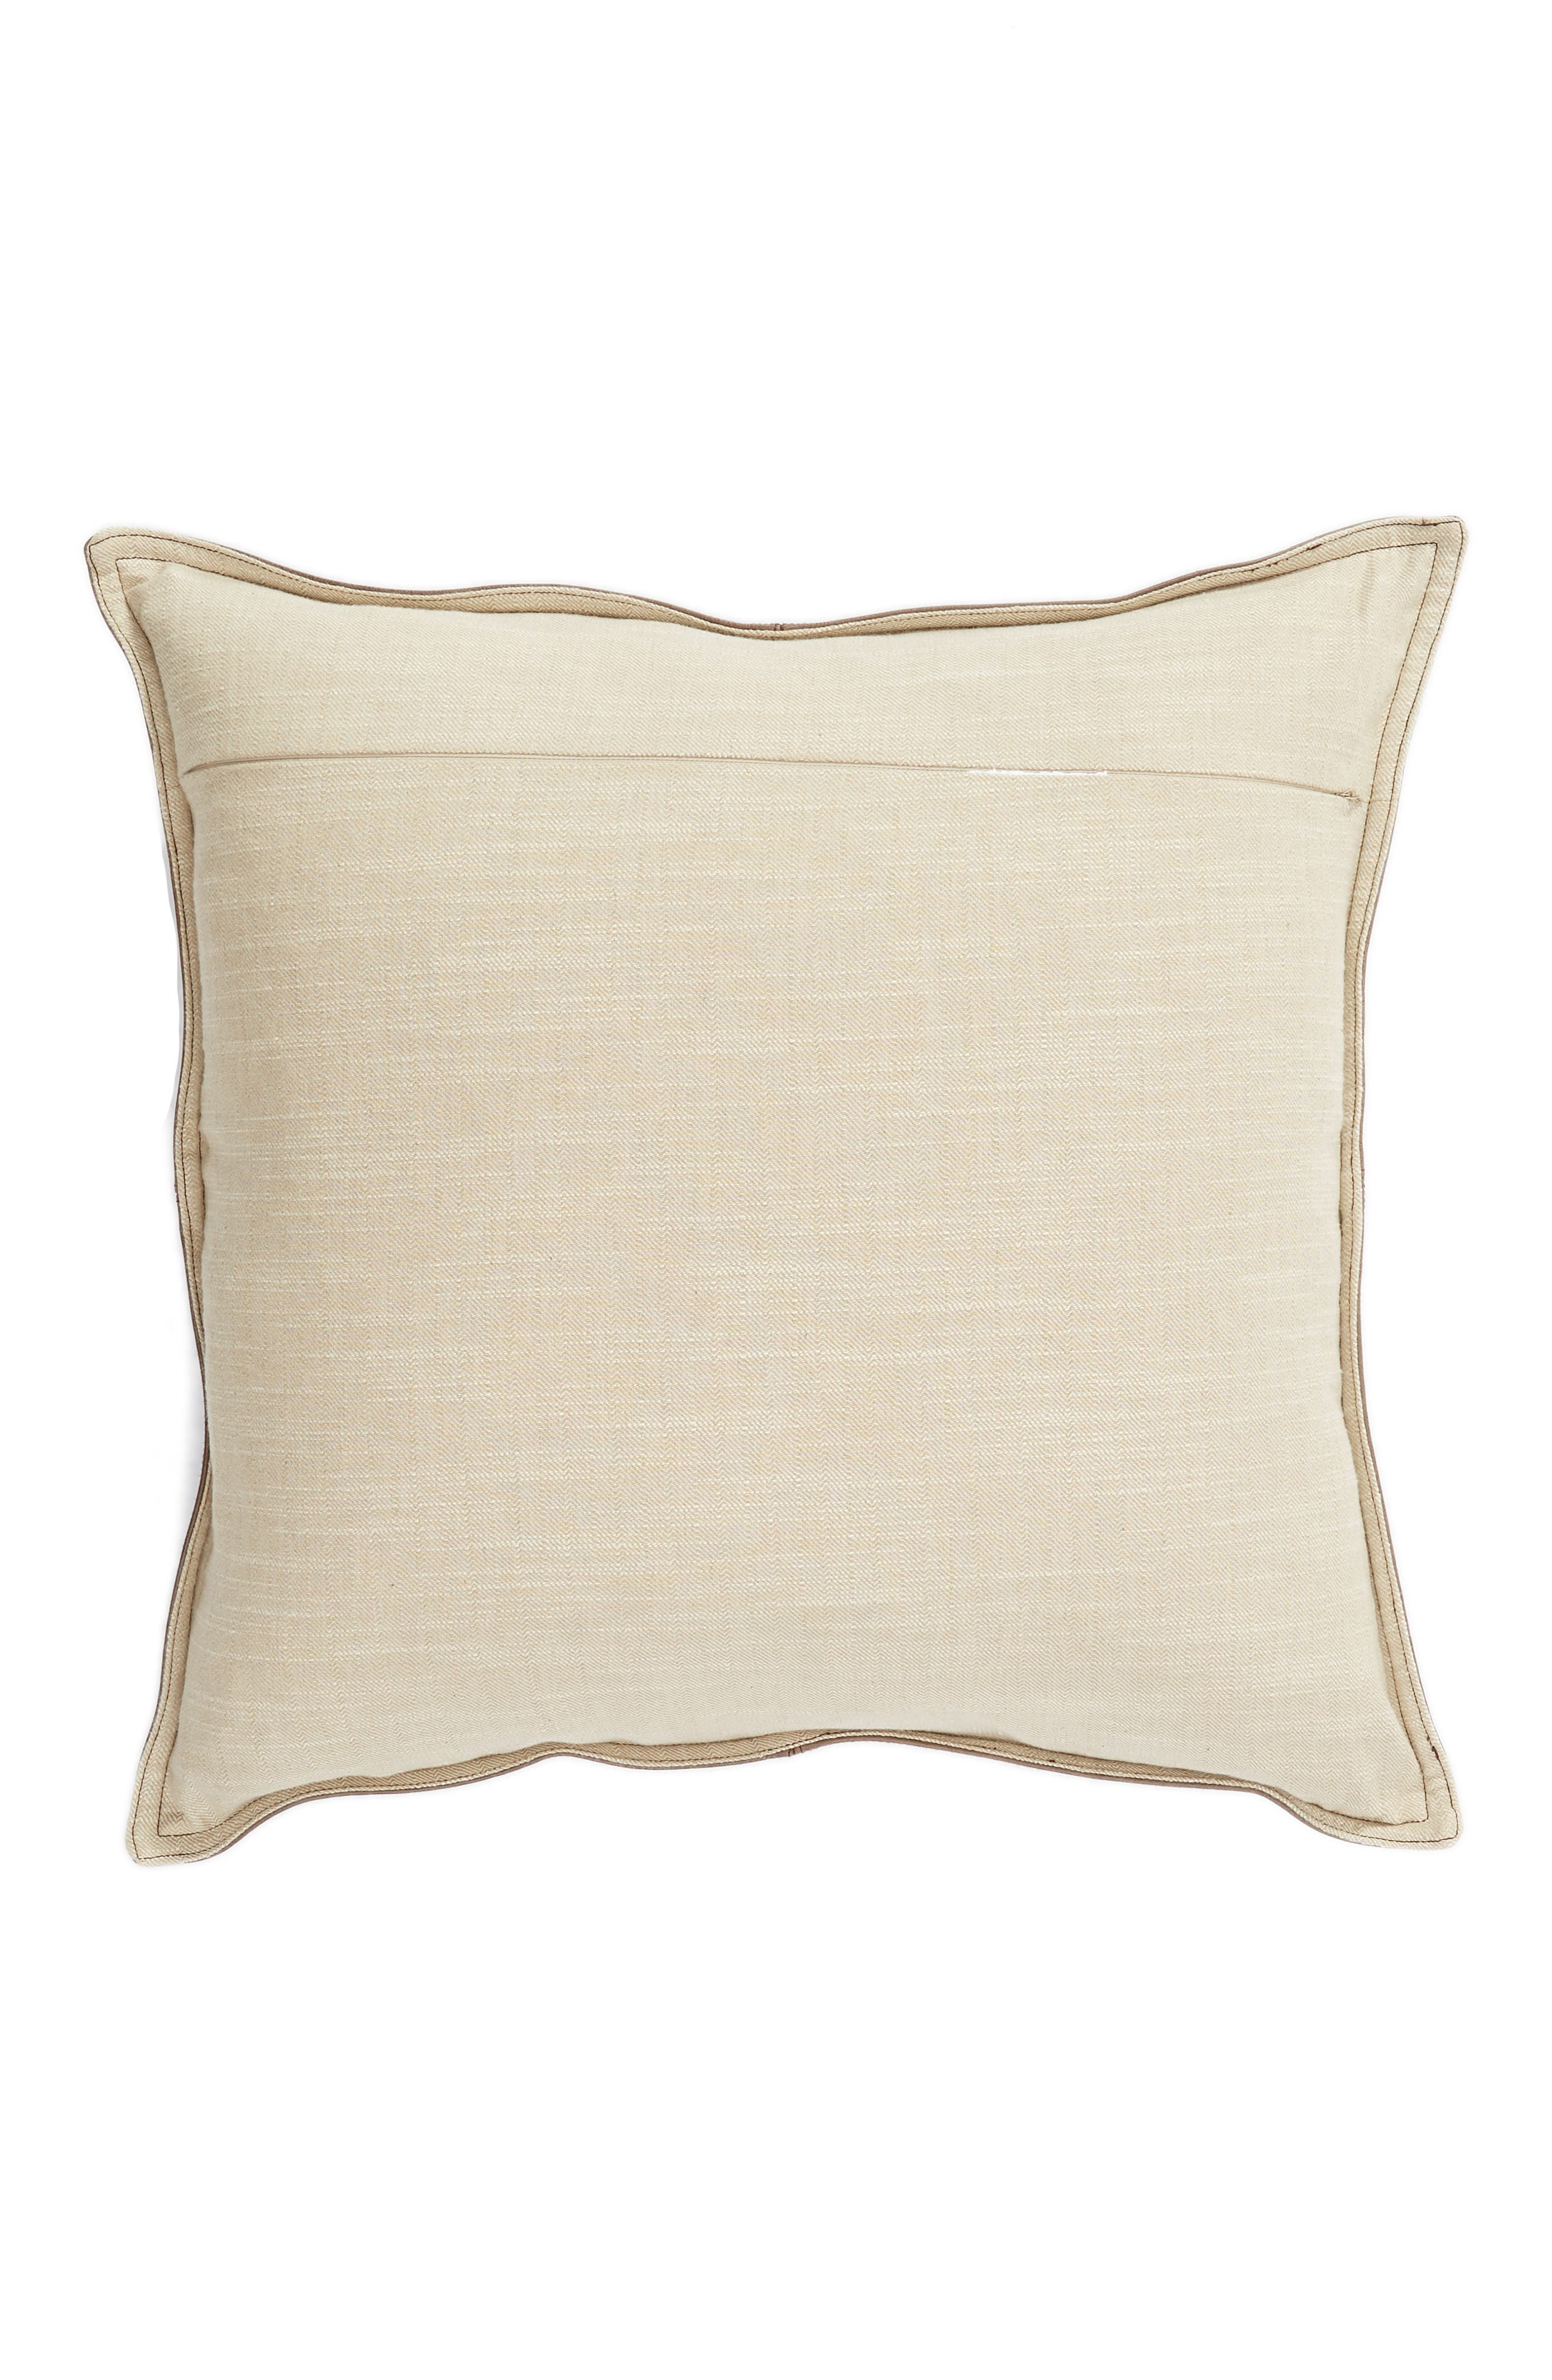 Parsons Leather Accent Pillow,                             Alternate thumbnail 2, color,                             LEATHER COCOA